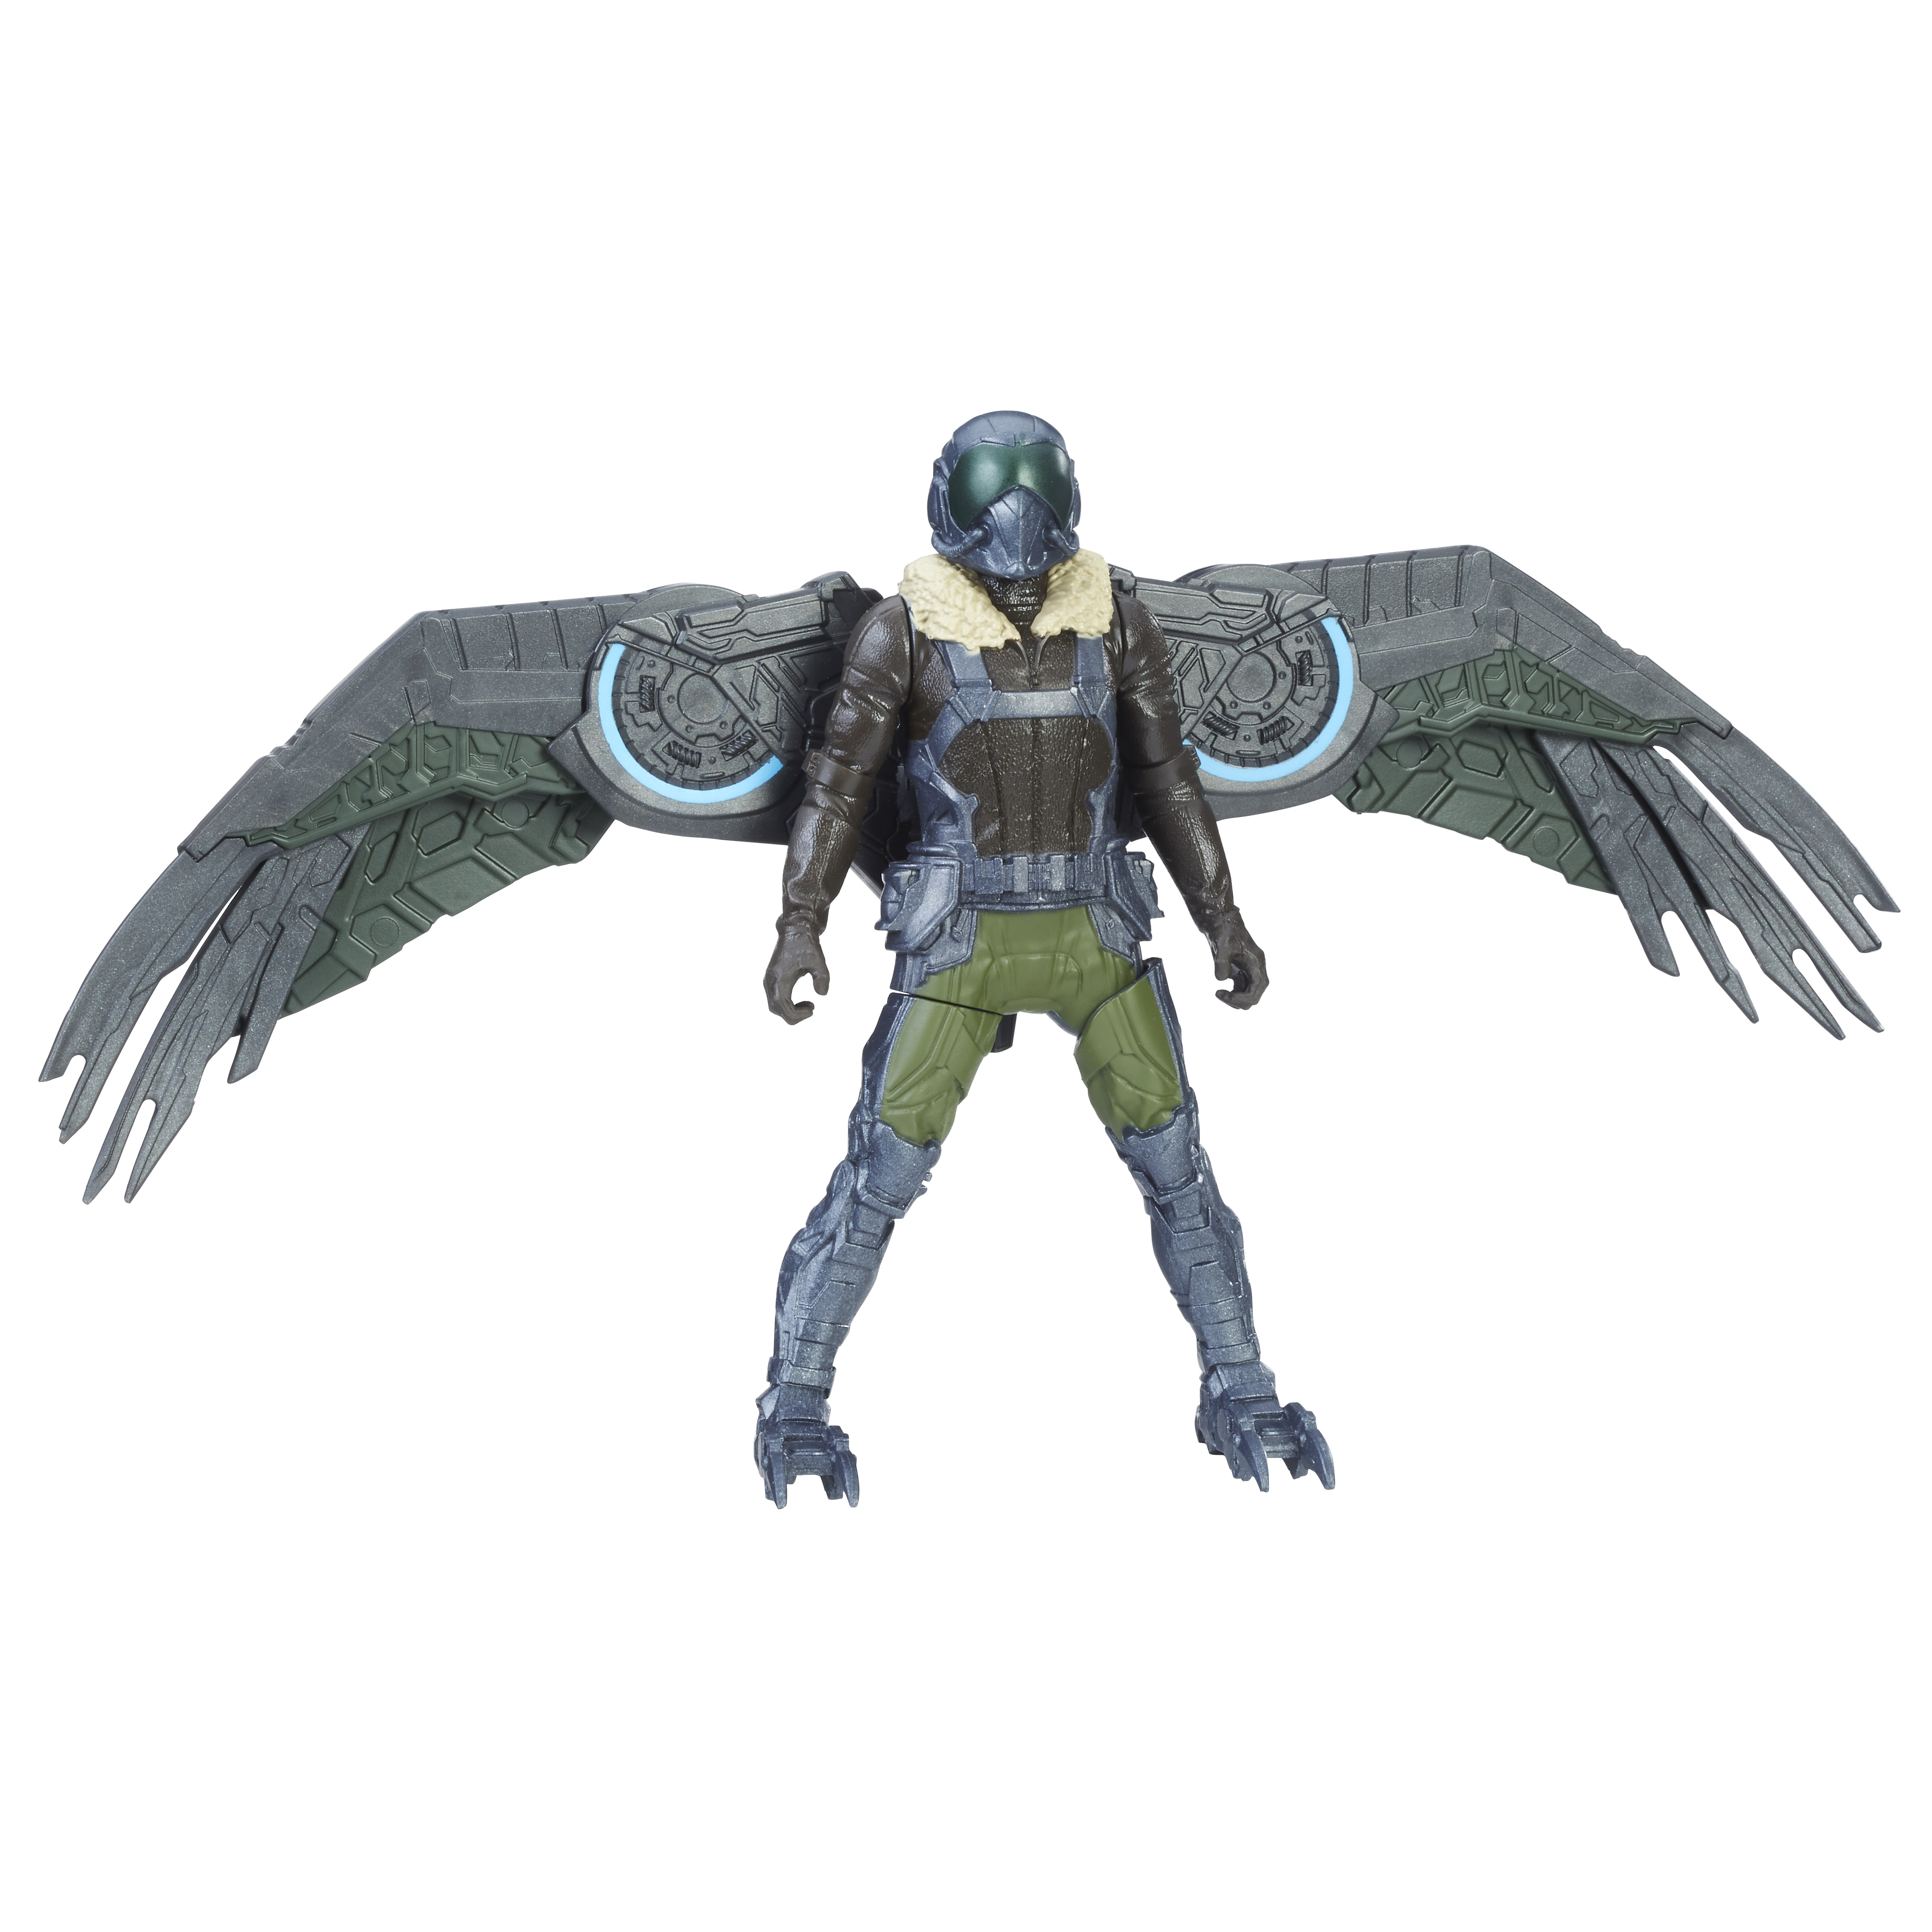 SPIDER-MAN HOMECOMING 6-INCH FEATURE Figure Assortment (Marvel's Vulture)